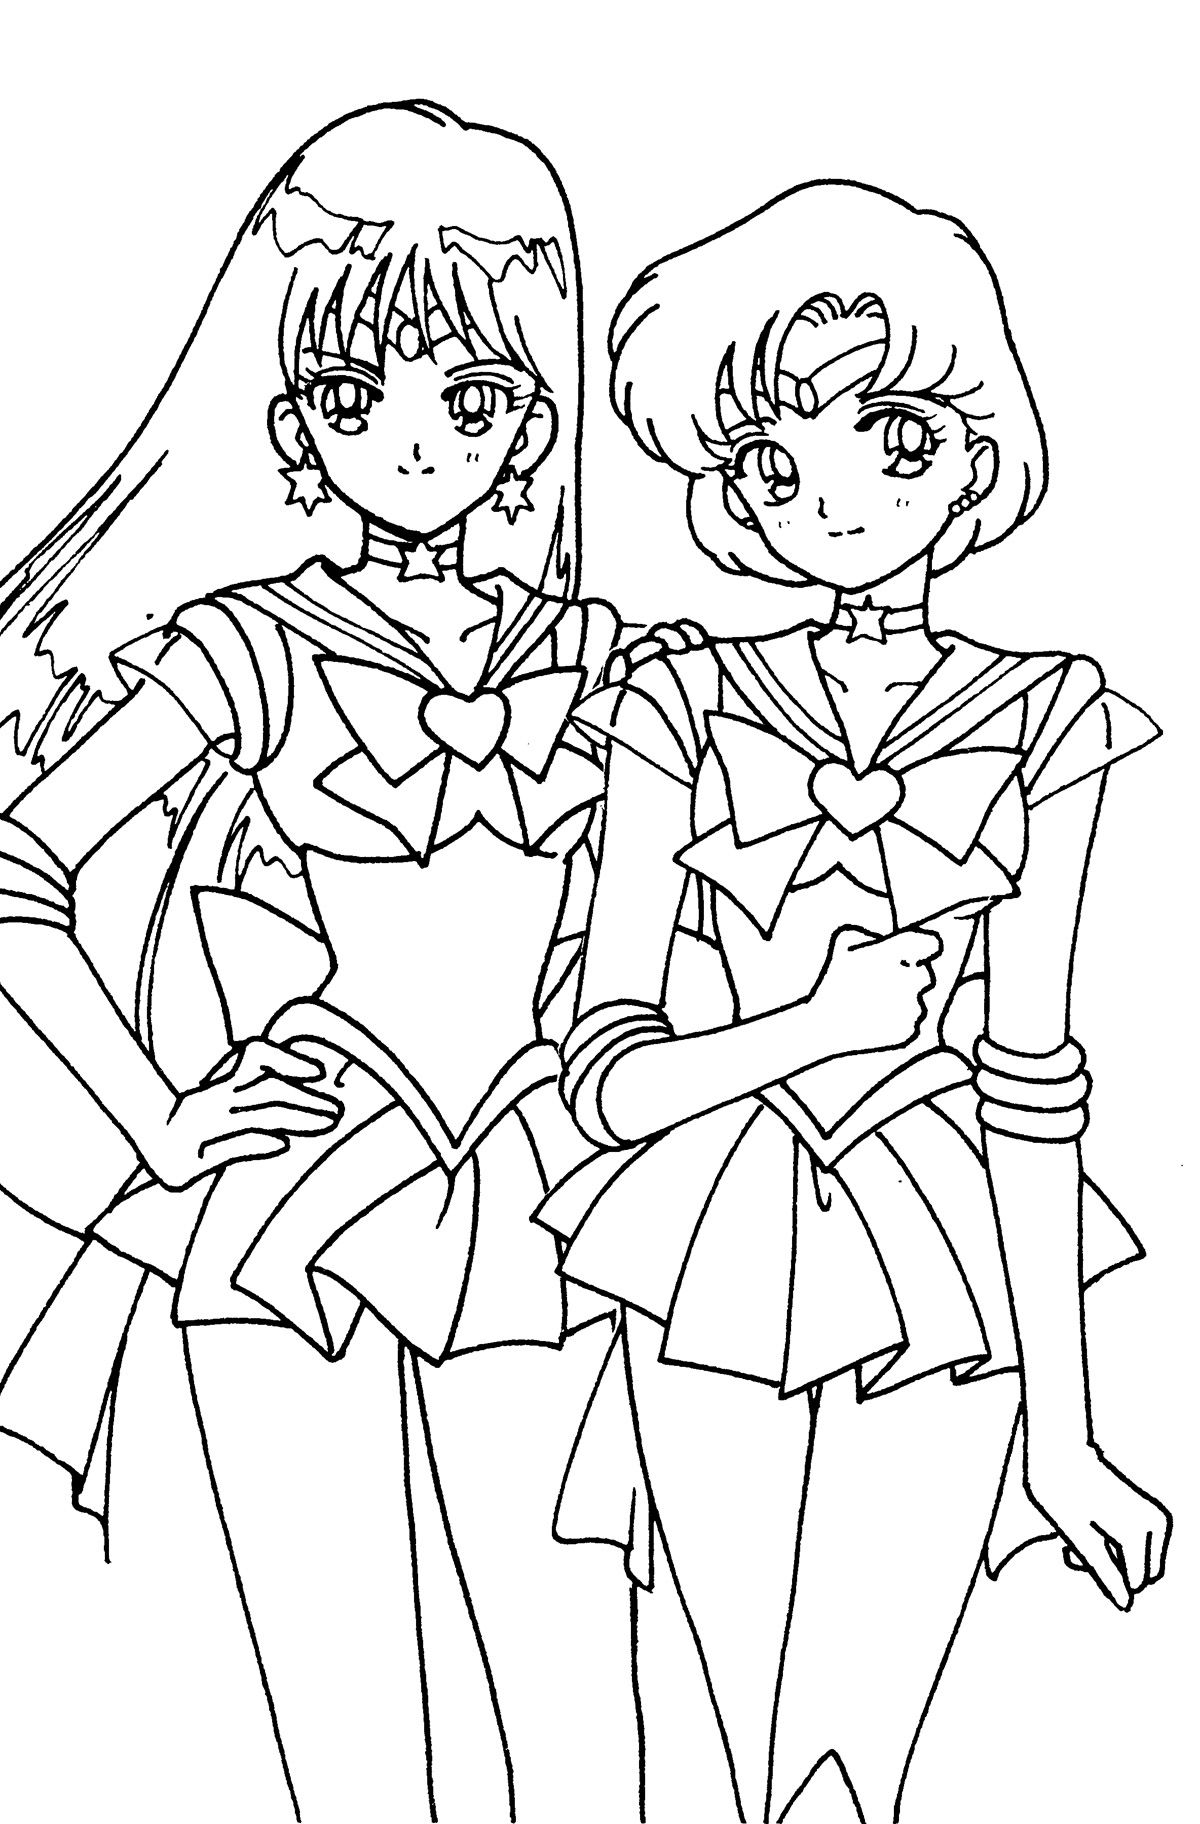 duos024.jpg (1200×1824) | COLORING PAGES :) | Pinterest | Sailor mars